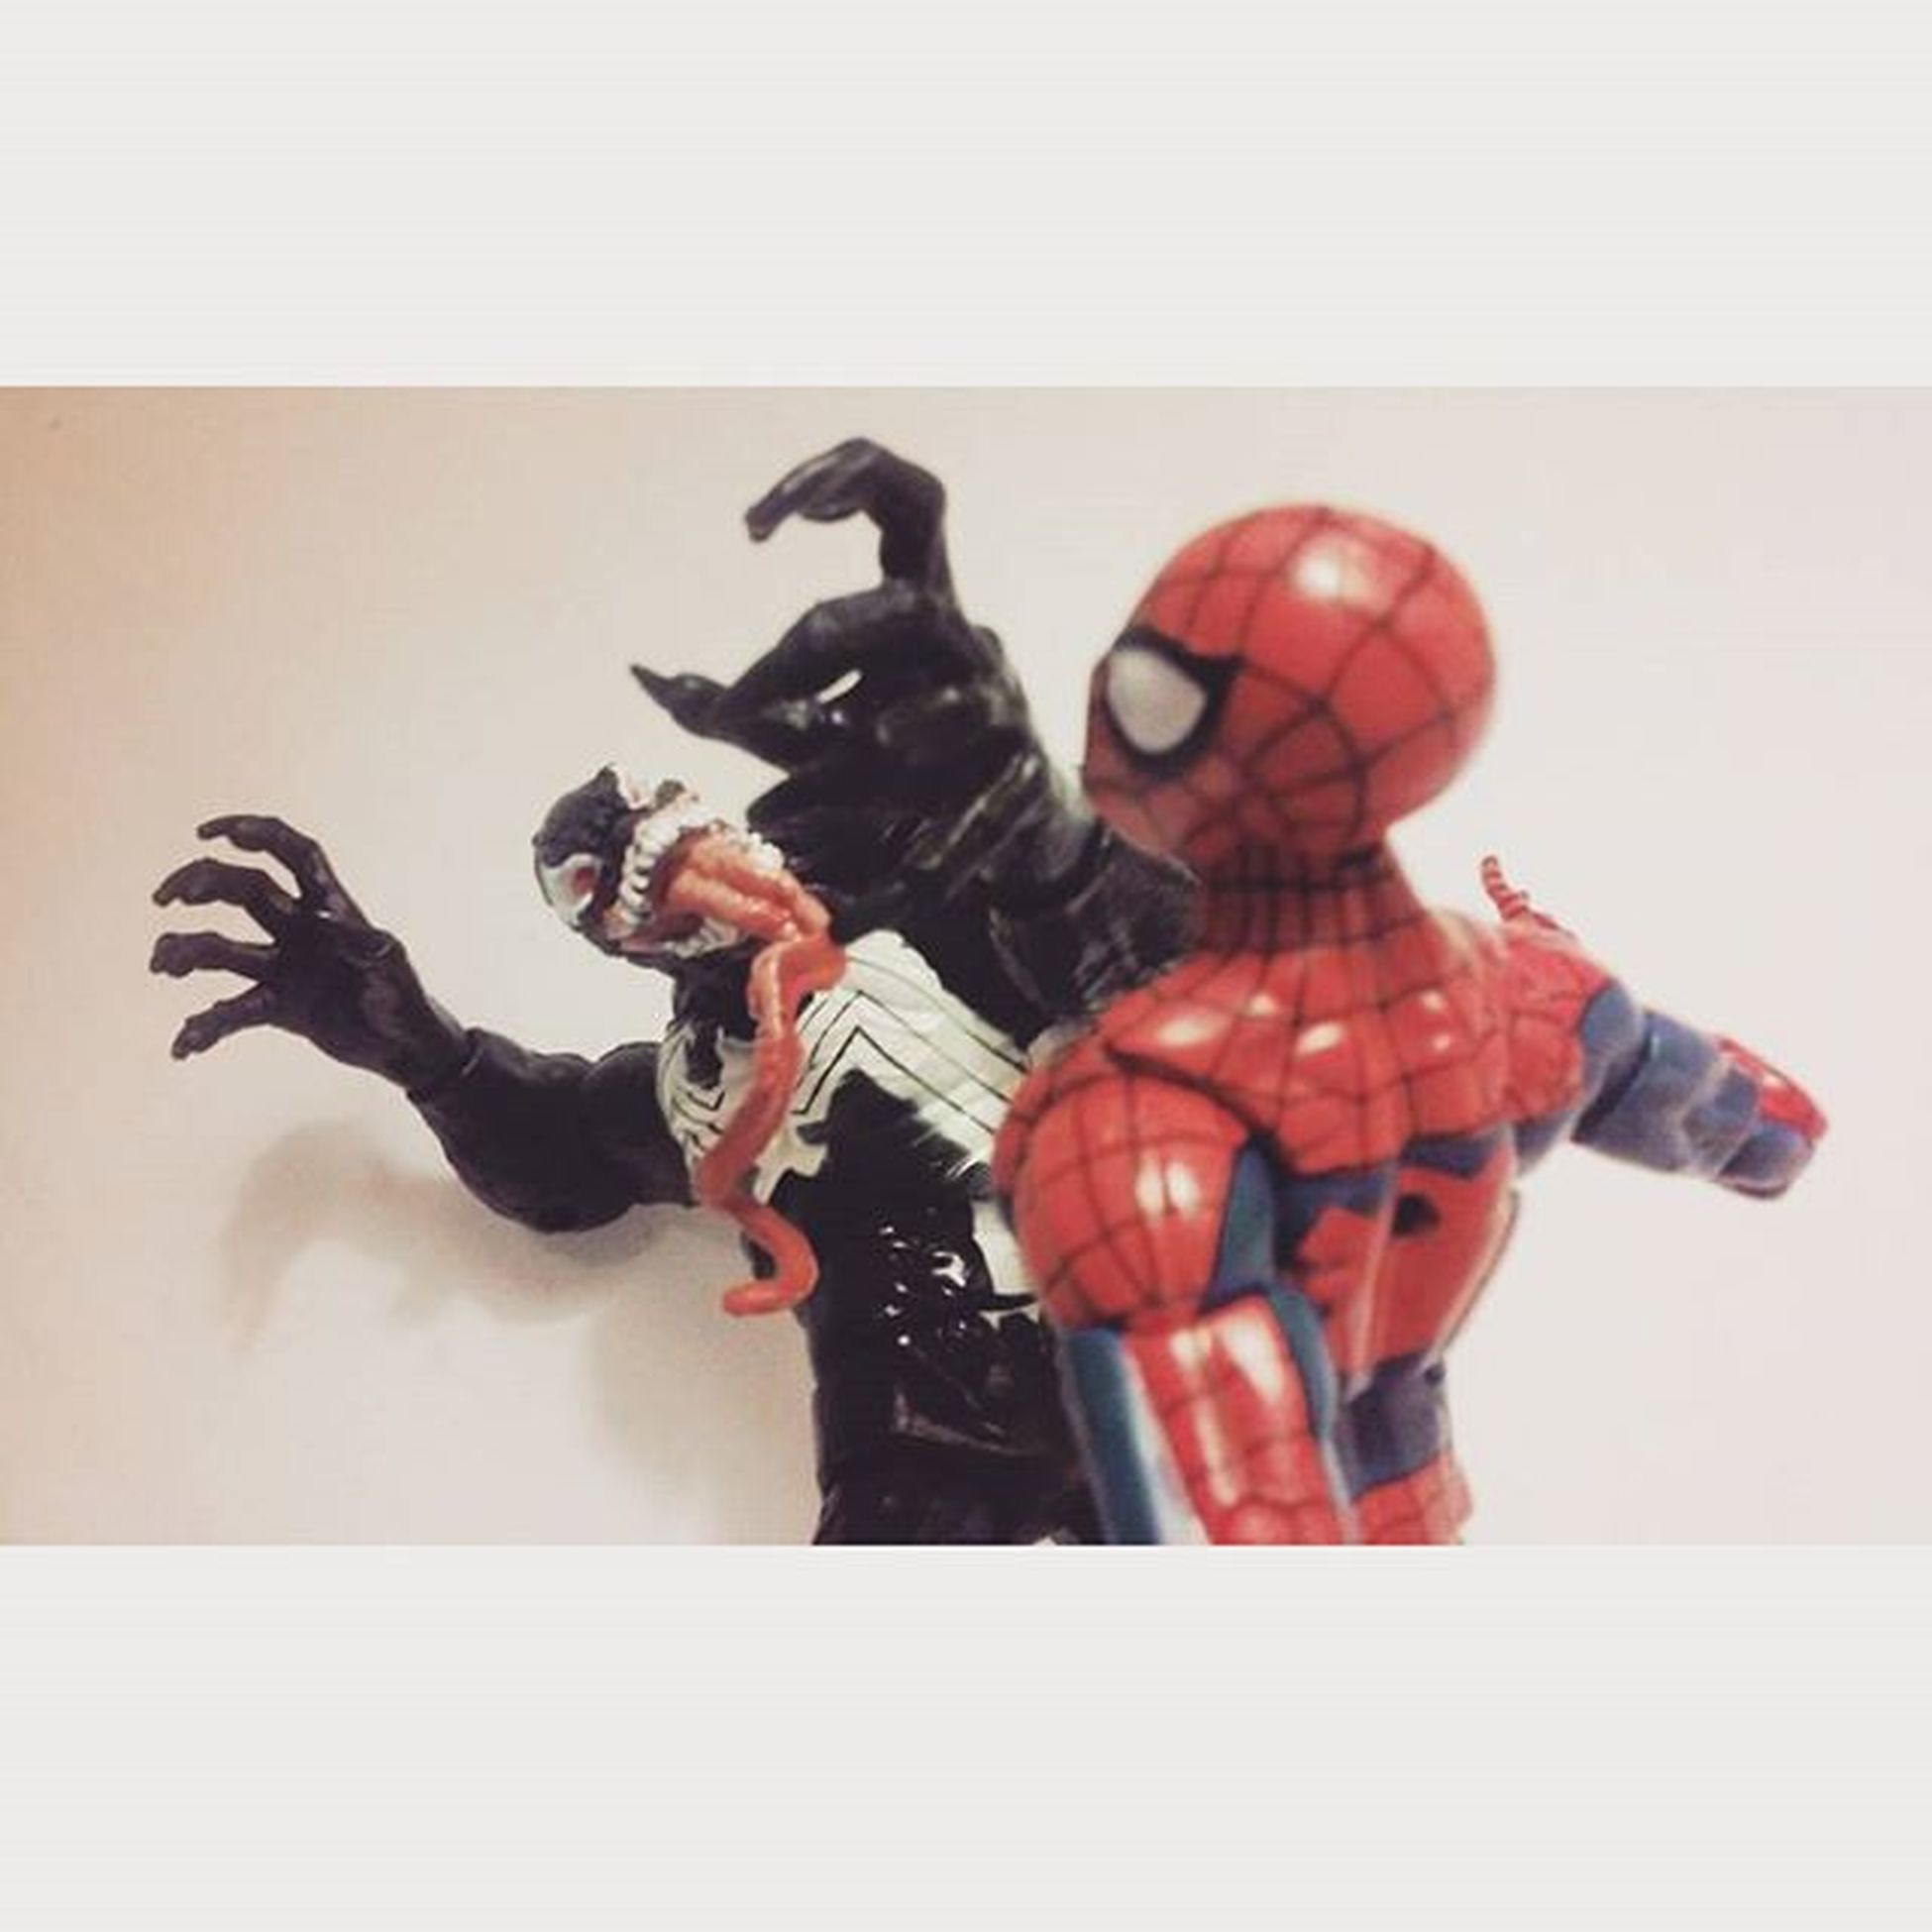 """""""Gonna make you suffer,Spiderman"""" //on a side note sorry I haven't posted anything lately i've been extremely busy but for my followers who've been sticking around thank you!// Marvellegends Manchild Mcu Infiniteseries Tcb_flyupandaway Nerd Comics Hasbro Venom Amazingspiderman Spiderman Baf Toyslagram Toysrmydrug Toys4life Figures Actiontoyart Actionfigures Macgargin Marvelentertainment Webhead Actionfigurephotography Webslinger"""